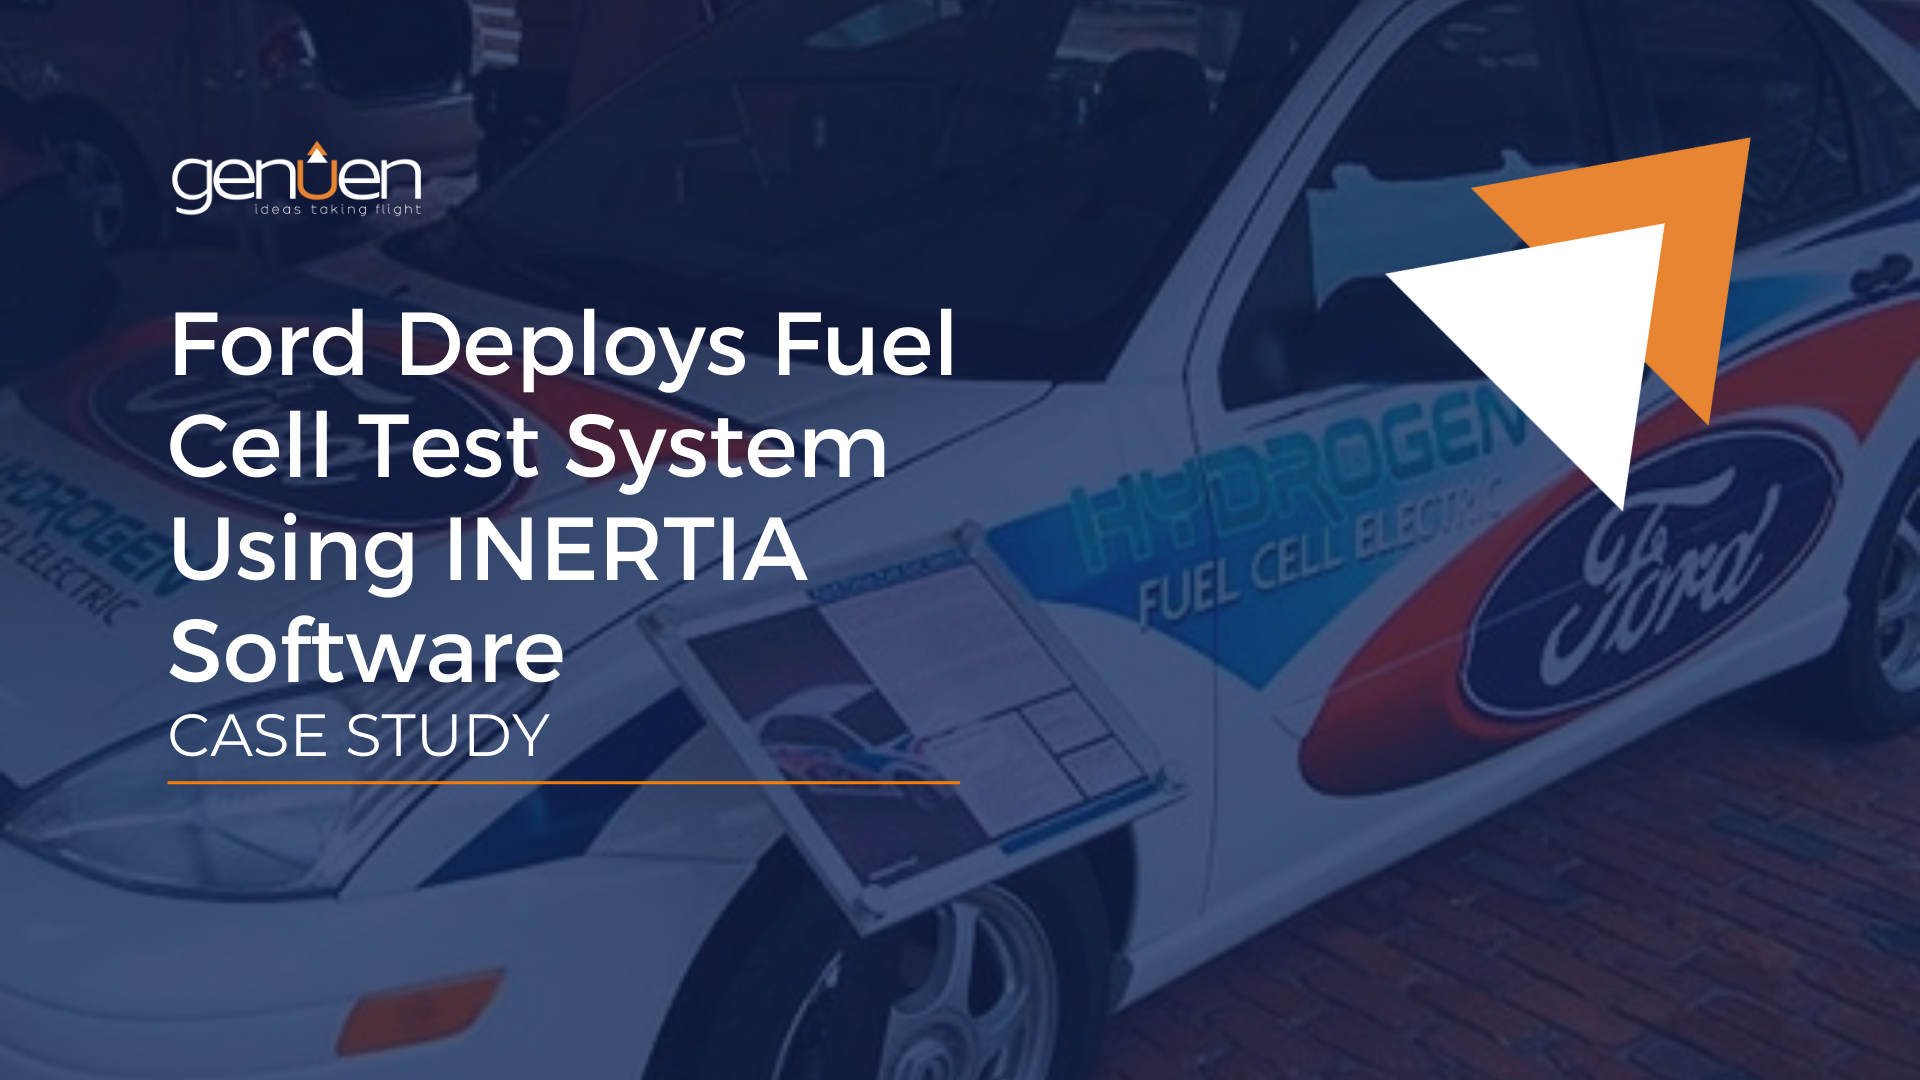 Ford Deploys Fuel Cell Test System Using INERTIA Software